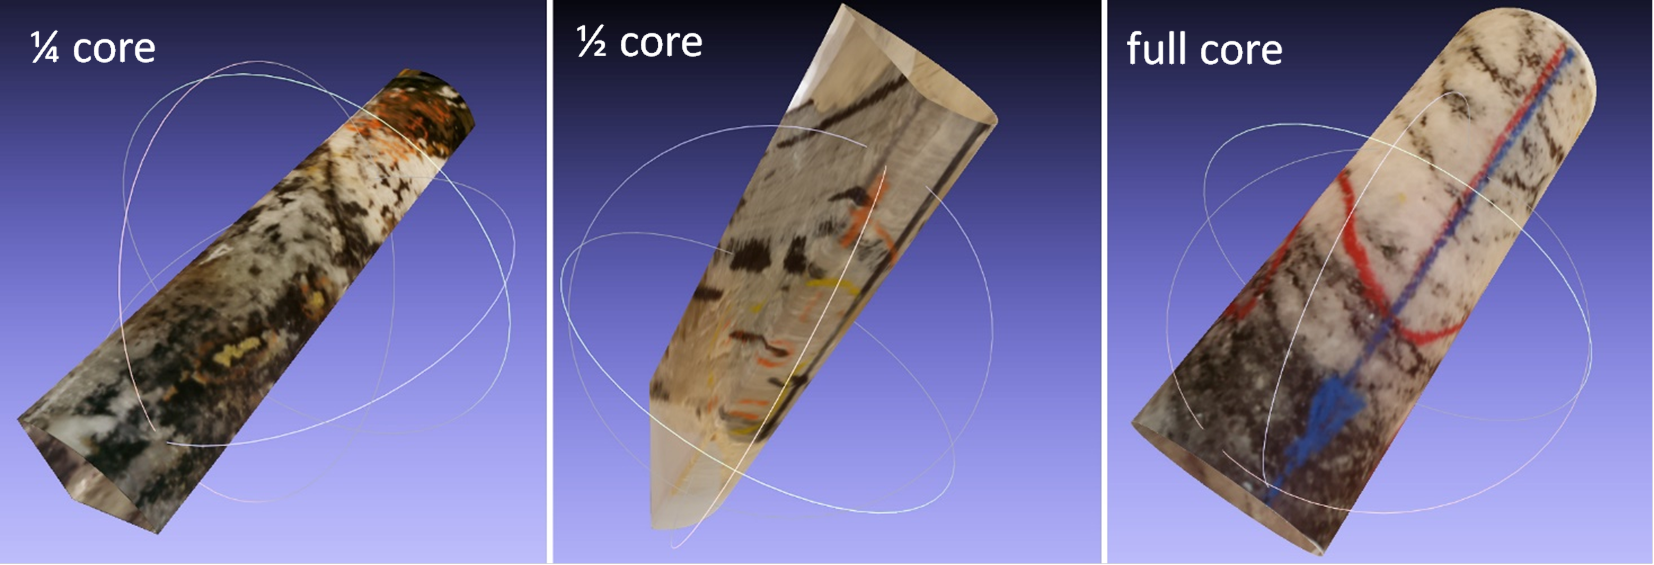 vKore - A 3D scanner and modular, node-based 3D software application for structural analysis and virtual core library acquisition.  It is the first 3D core imaging tool designed to obtain a permanent record of significant structural features observed in core samples - particularly the mineralization-related structures - key factors for Structural Vectoring®.  The resultant 3D virtual core can be digitally stored and electronically transferred off-site to any location worldwide for the processing of lines and planes,including kinematic features associated to faults and folds. Their spatial location, orientation, and characteristics are directly extracted from within the software's 3D viewport. The structural information can be live-linked to the Ore.node's stereonet for analysis and visualization. This allows for the structural information to be validated and audited by experts or prospective investors, even after the core has been cut, split and pulverized for chemical analysis. In addition, the Ore.node-vKore™ scanner (Reader) is light-weight, rugged and portable, and it can be run from car batteries if the exploration project is located in remote areas.